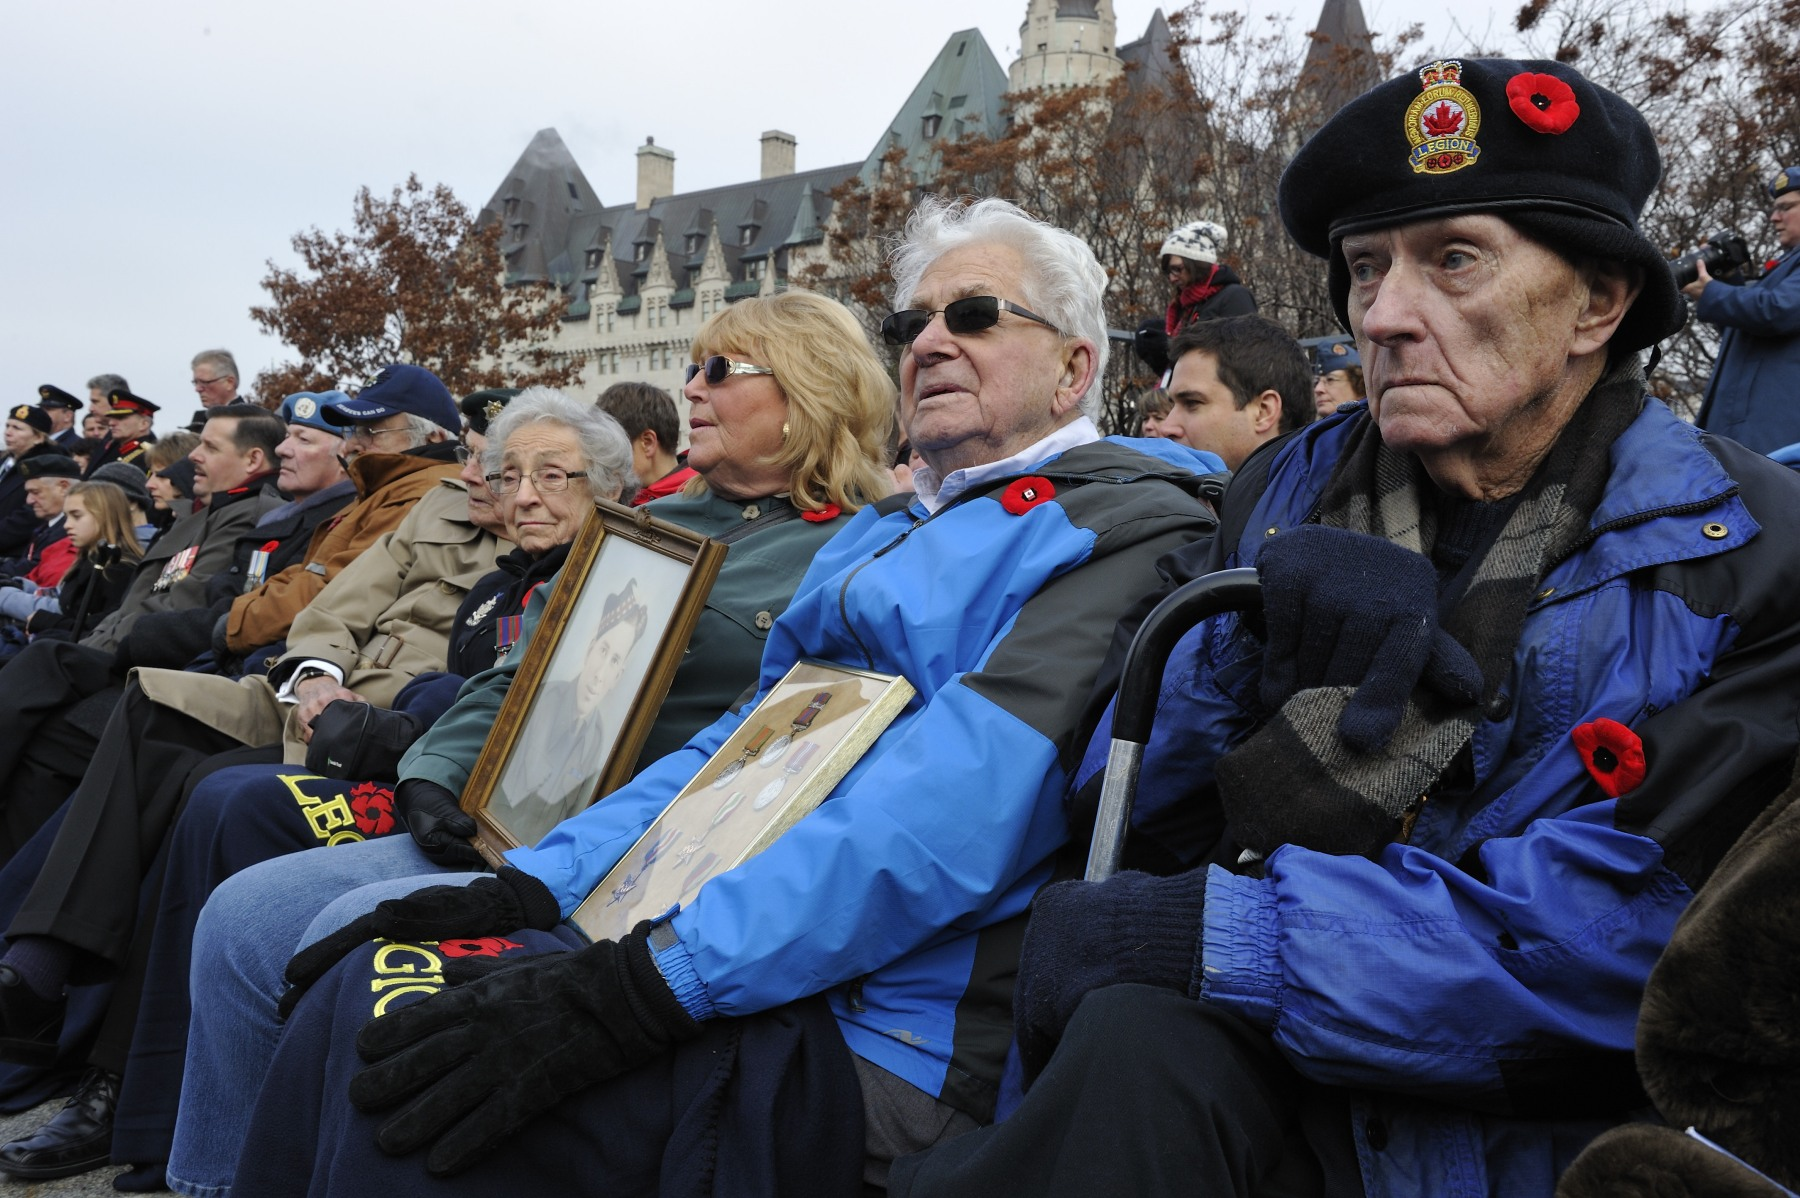 Hundreds of veterans gathered around the National War Memorial for this ceremony.